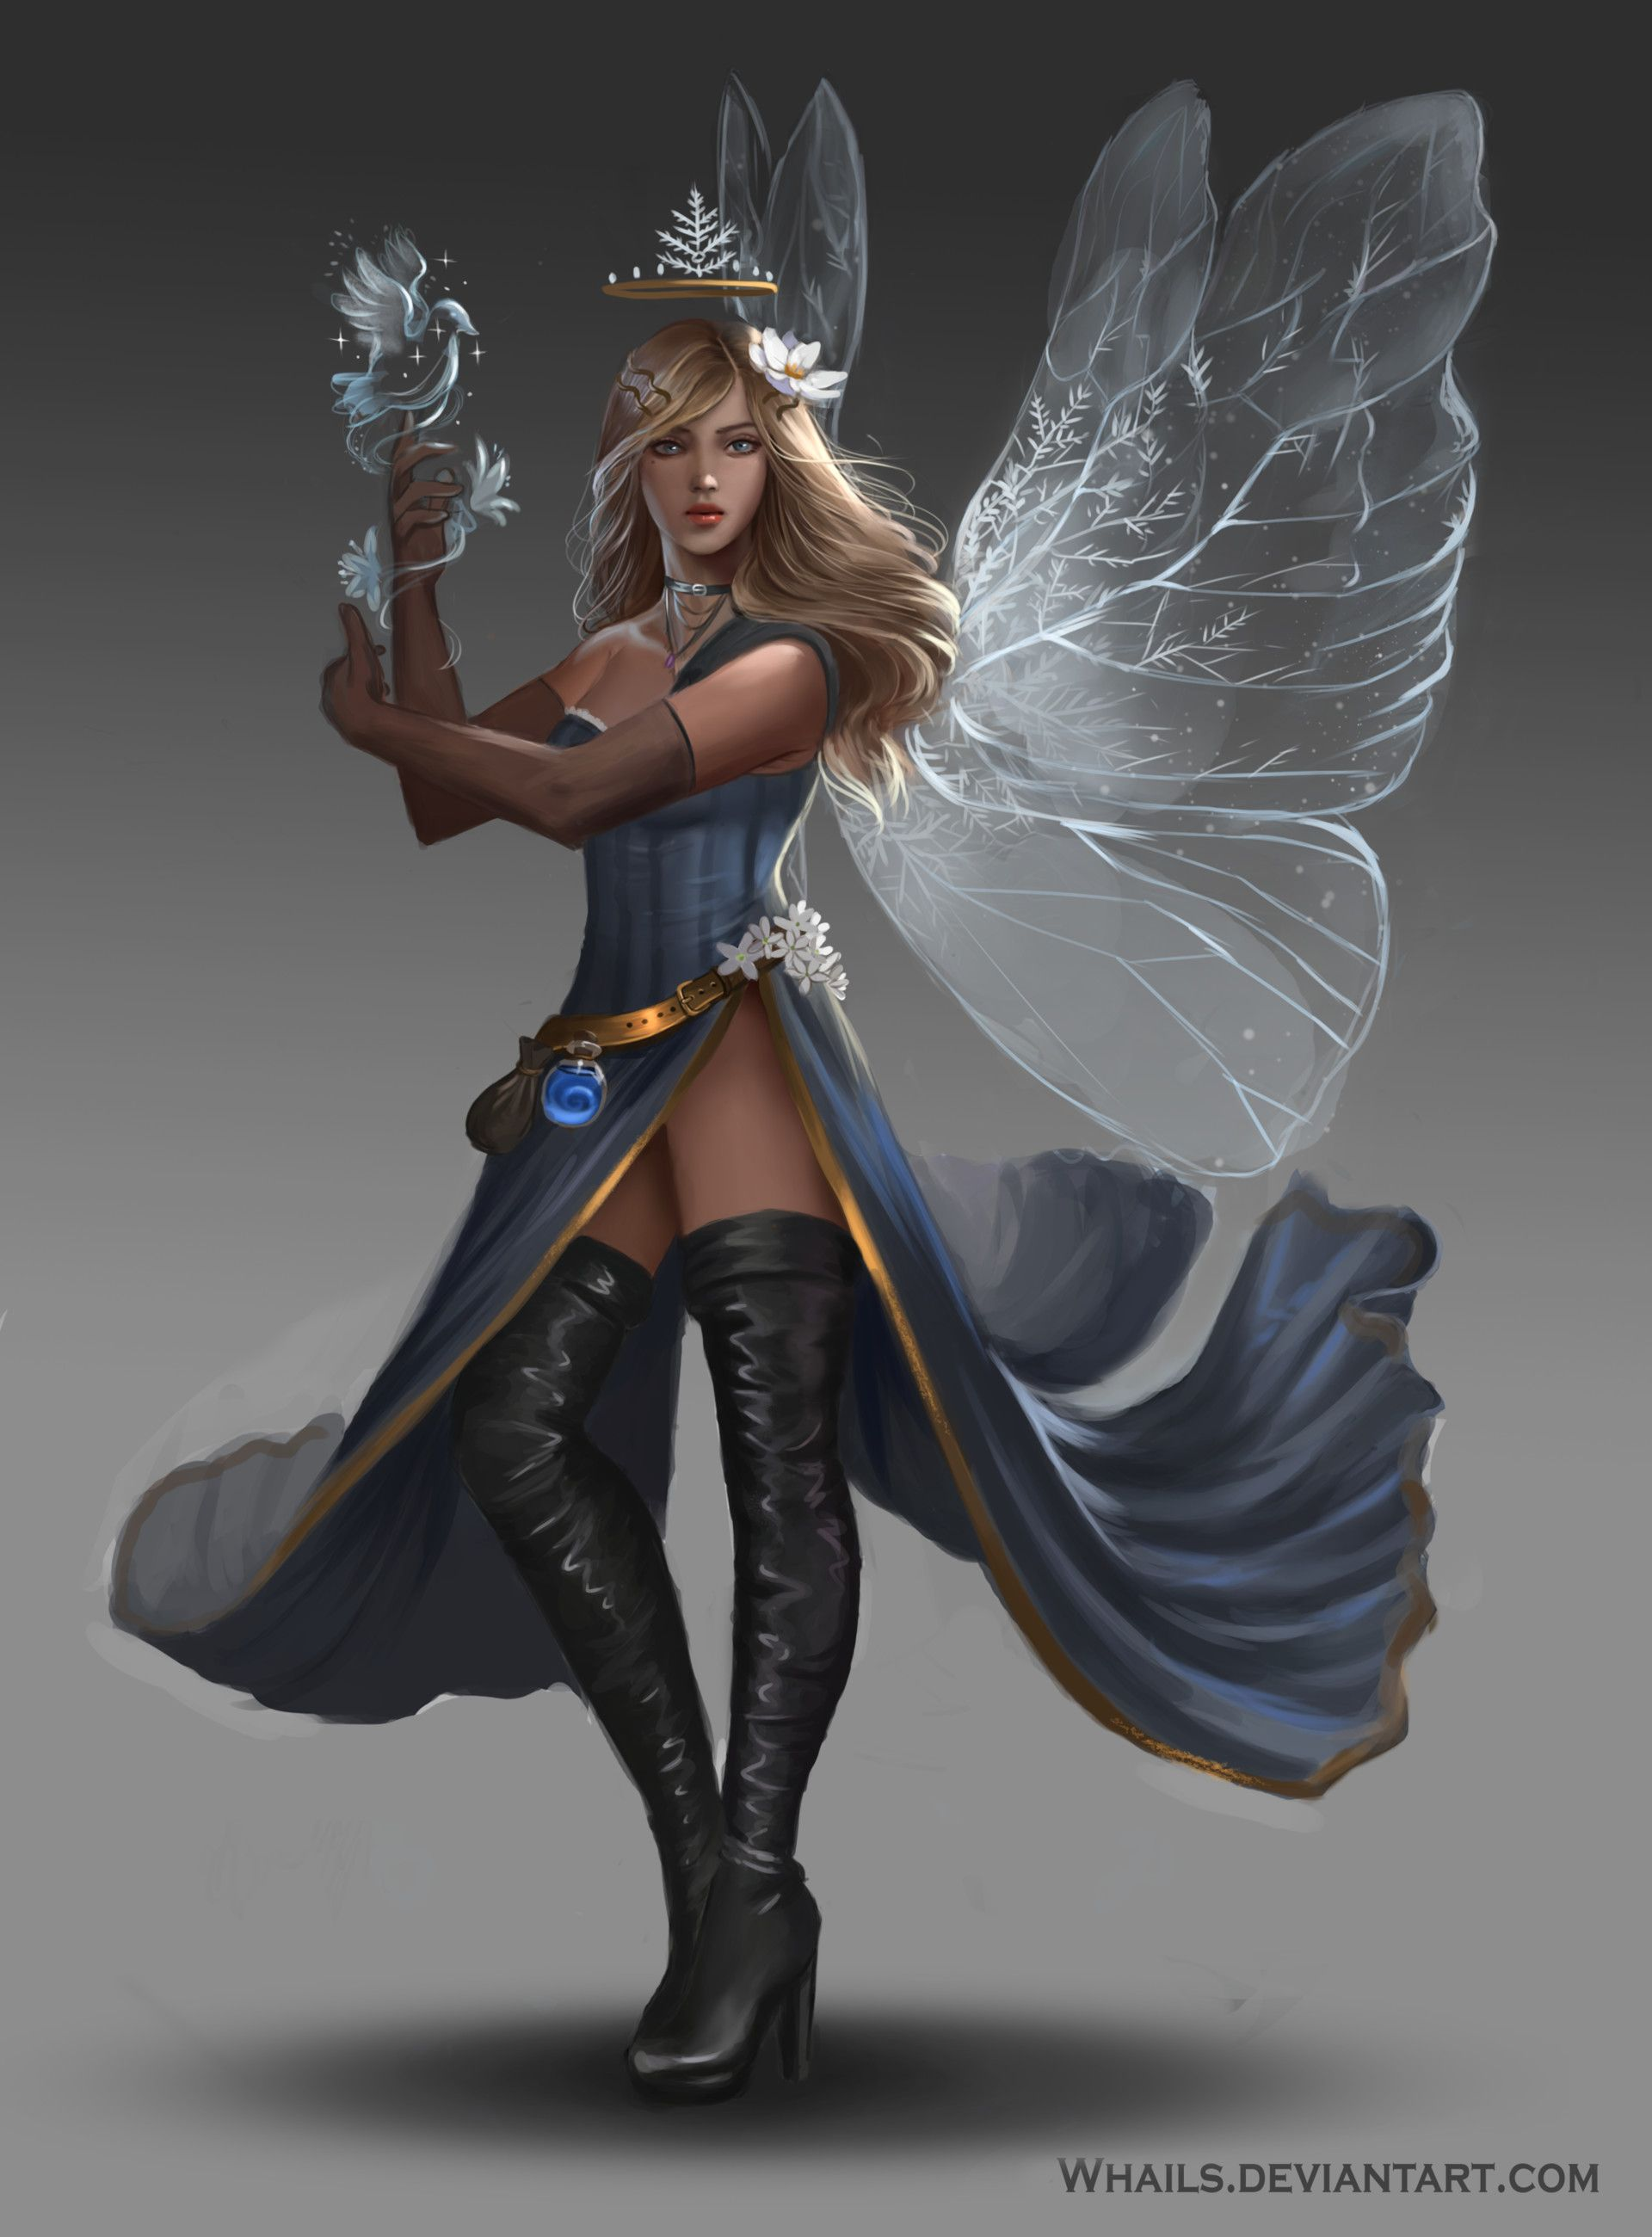 Pin by Jason on Reference Characters | Fantasy art women ...  Final Fantasy Female Characters Wallpaper